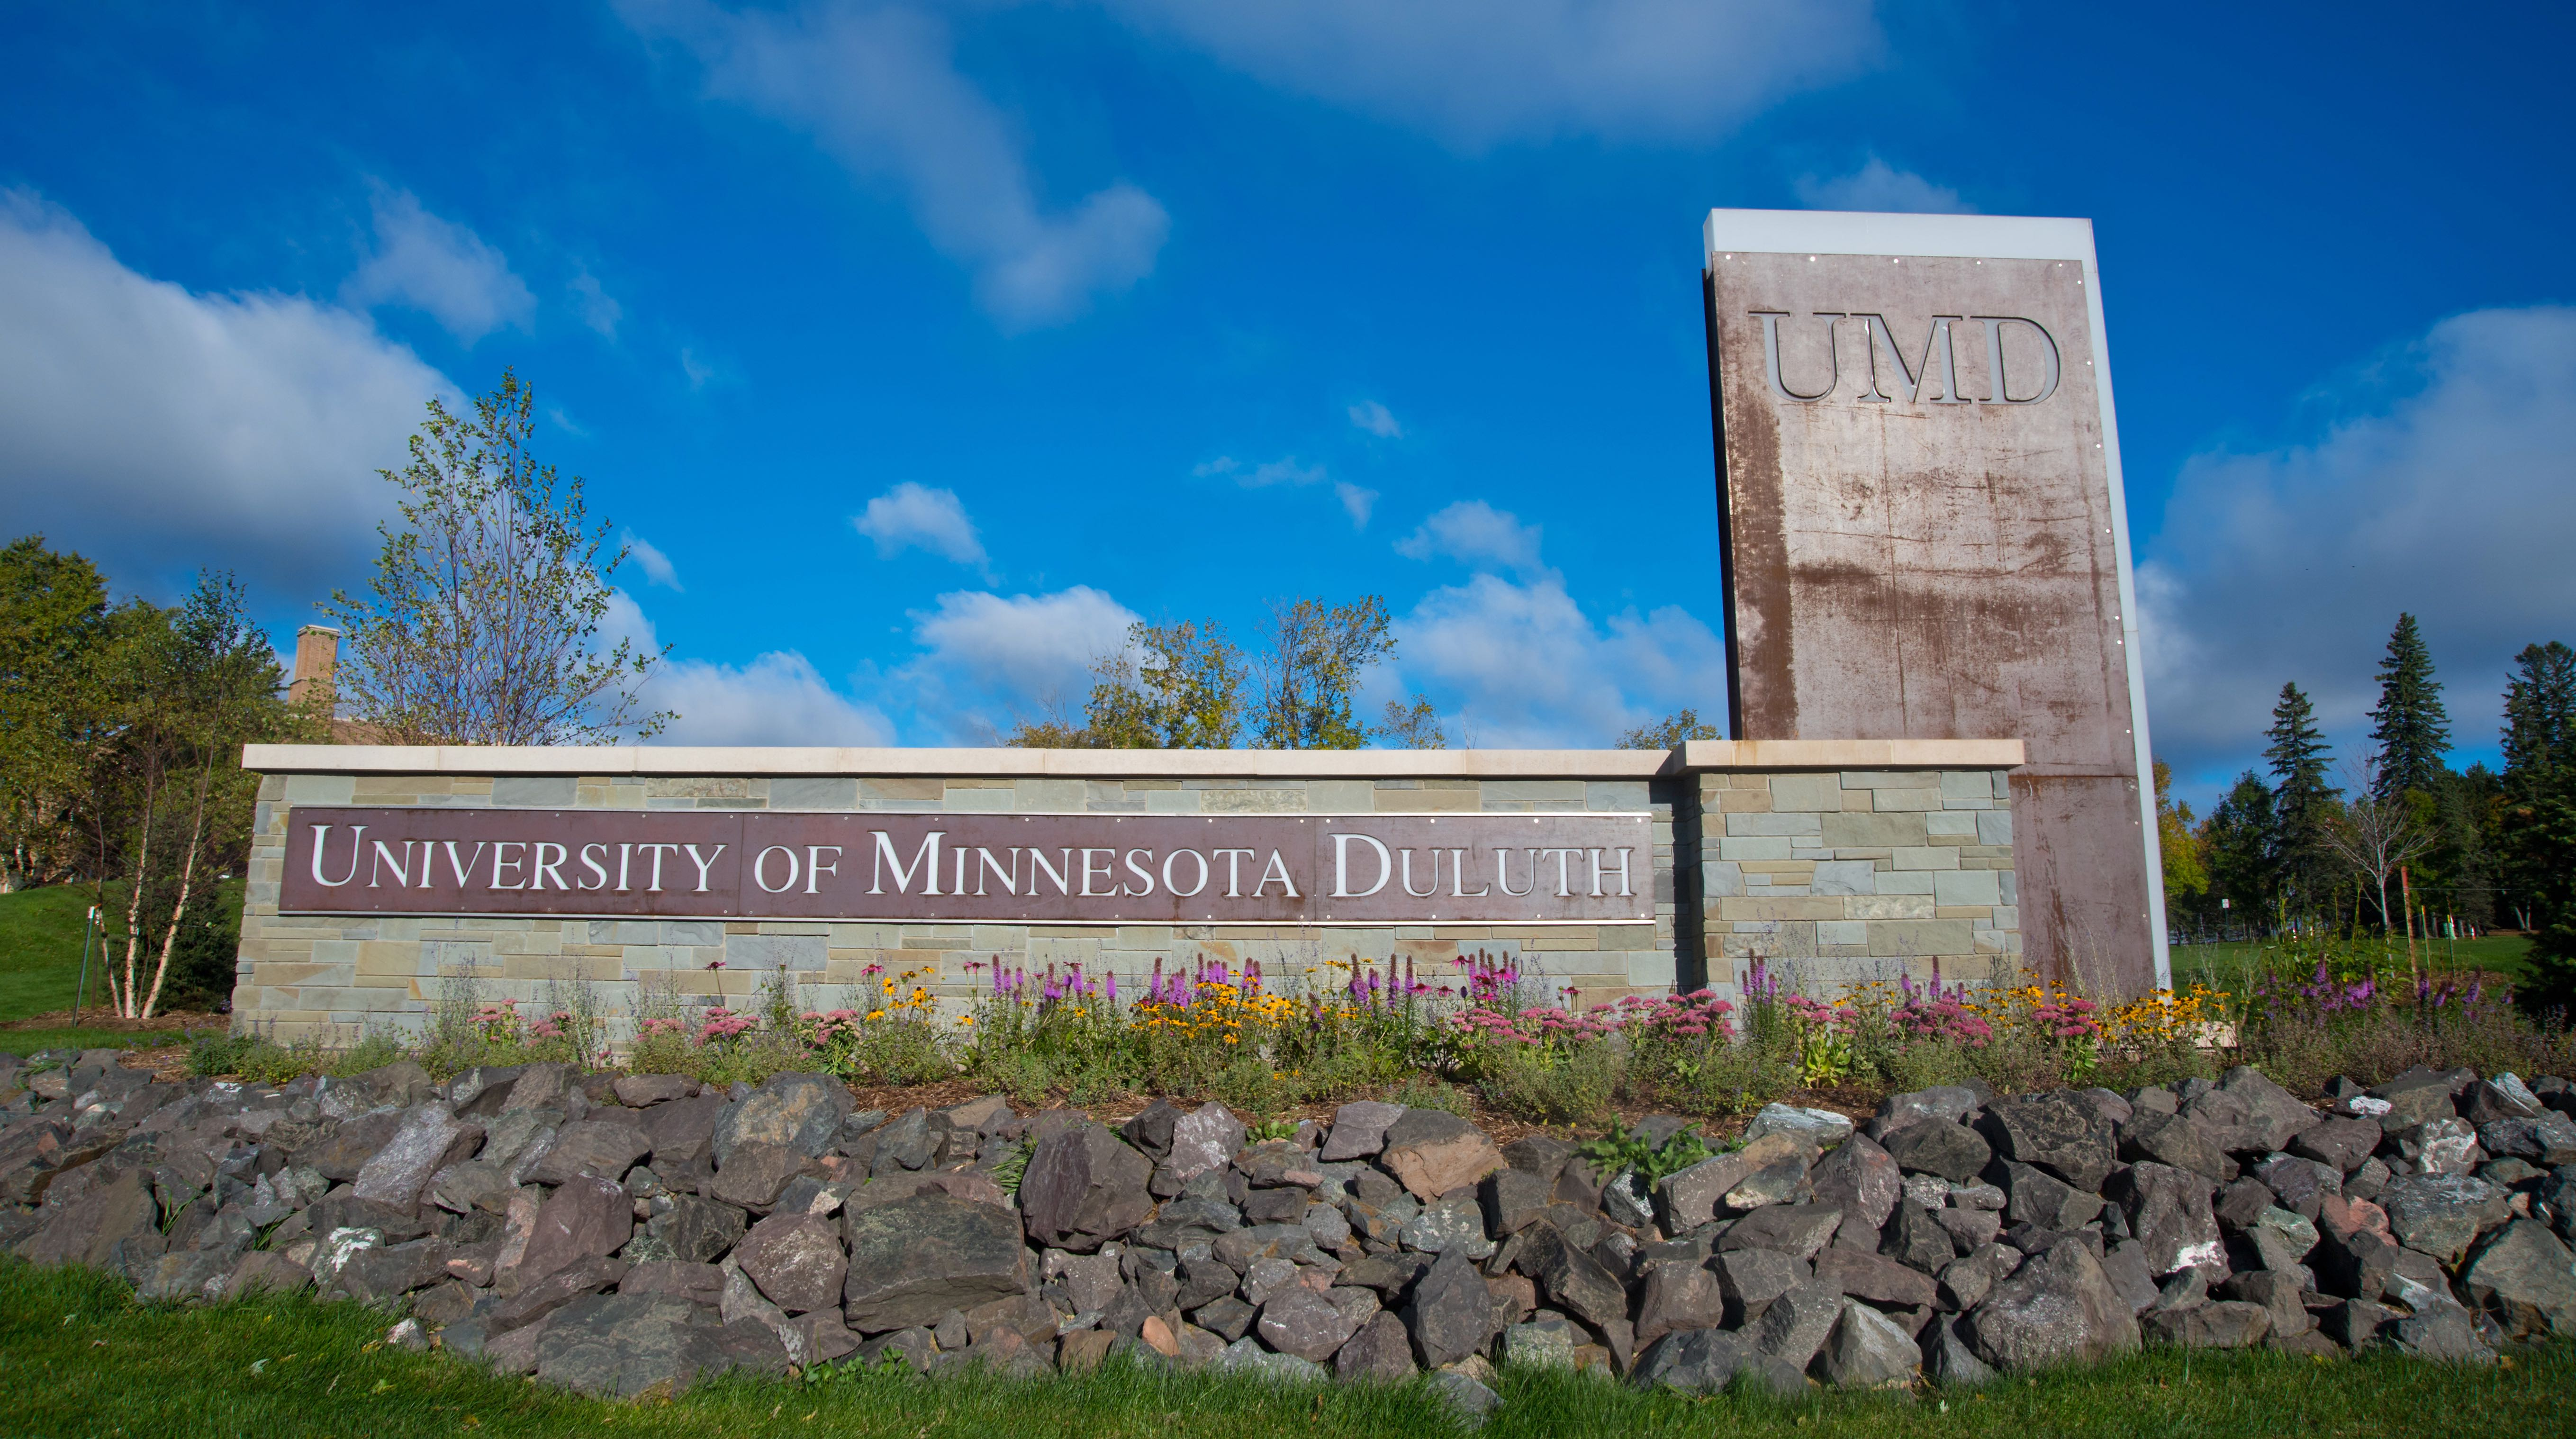 UMD brick sign with blue sky in the background